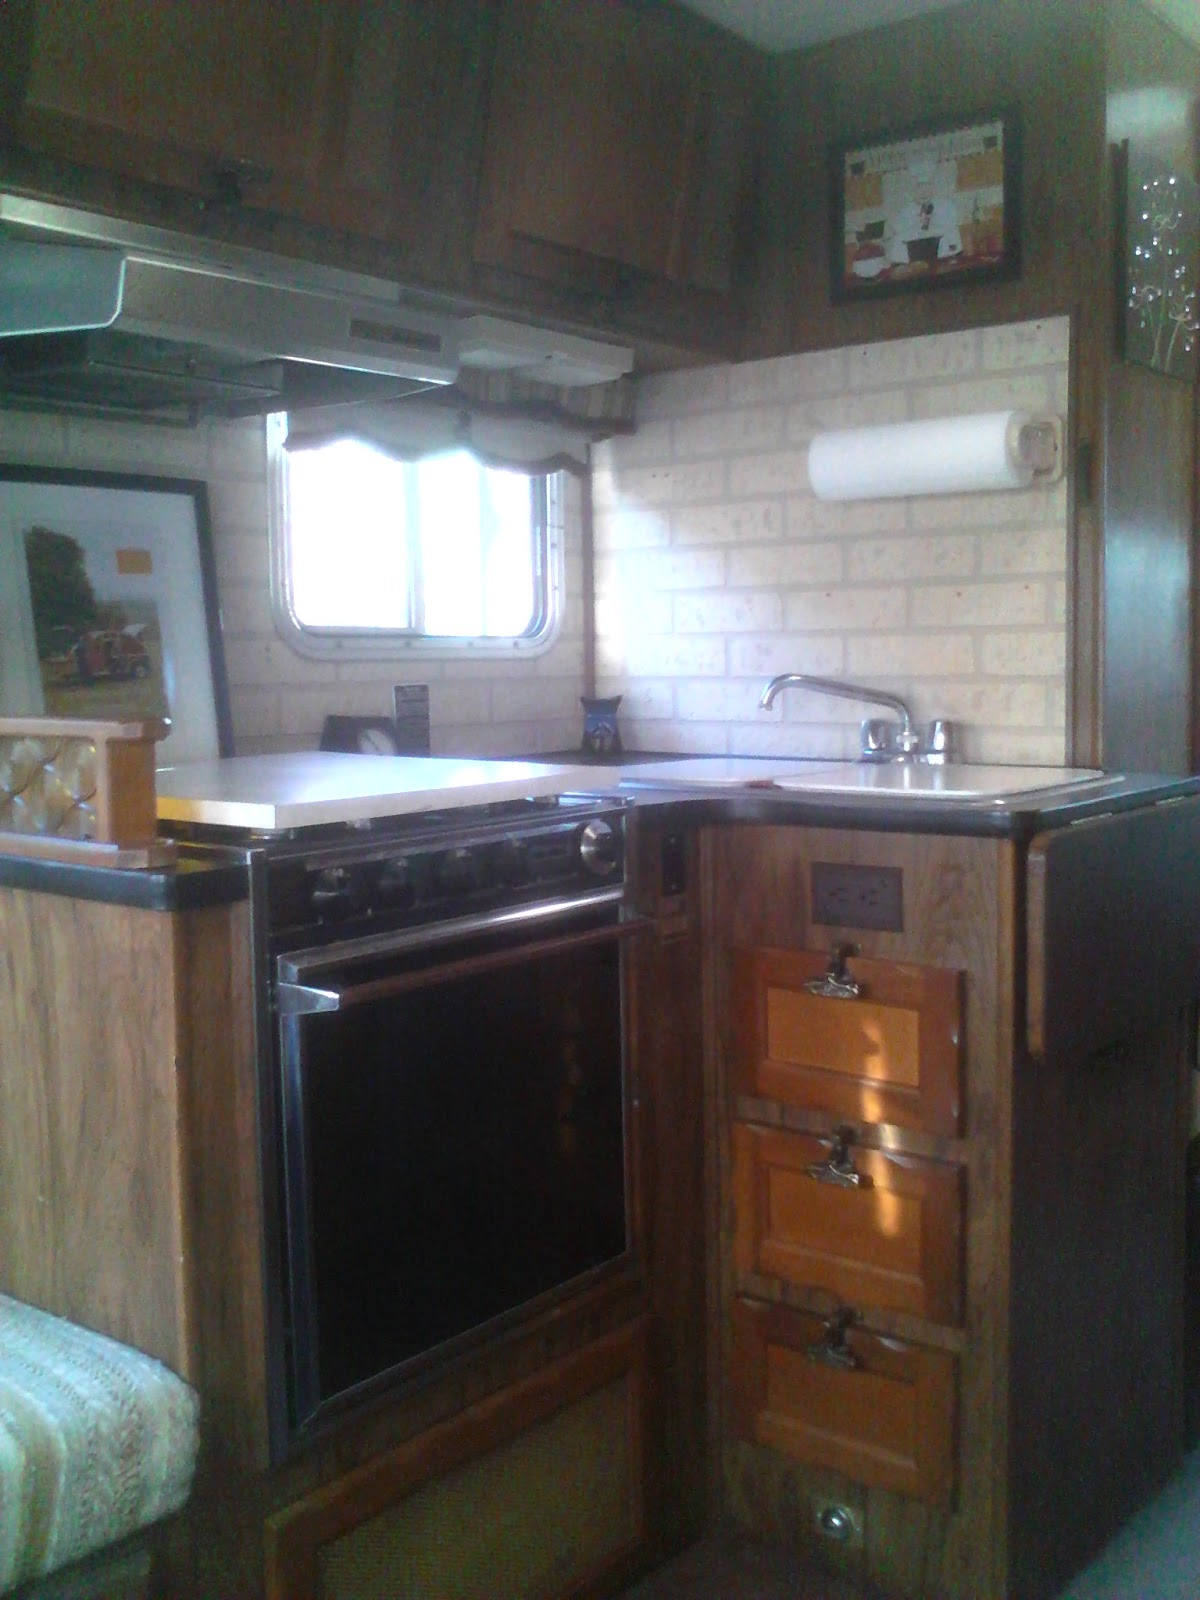 My Vintage 1978 Georgie Boy Swinger Executive Lounge Motorhome Duo Therm Thermostat Wiring Diagram 1979 Nu Wa Note In This Picture The Propane Gage Located Built Directly On Counter Top Clearly Within Eye Range Also Impeccable Condition Of